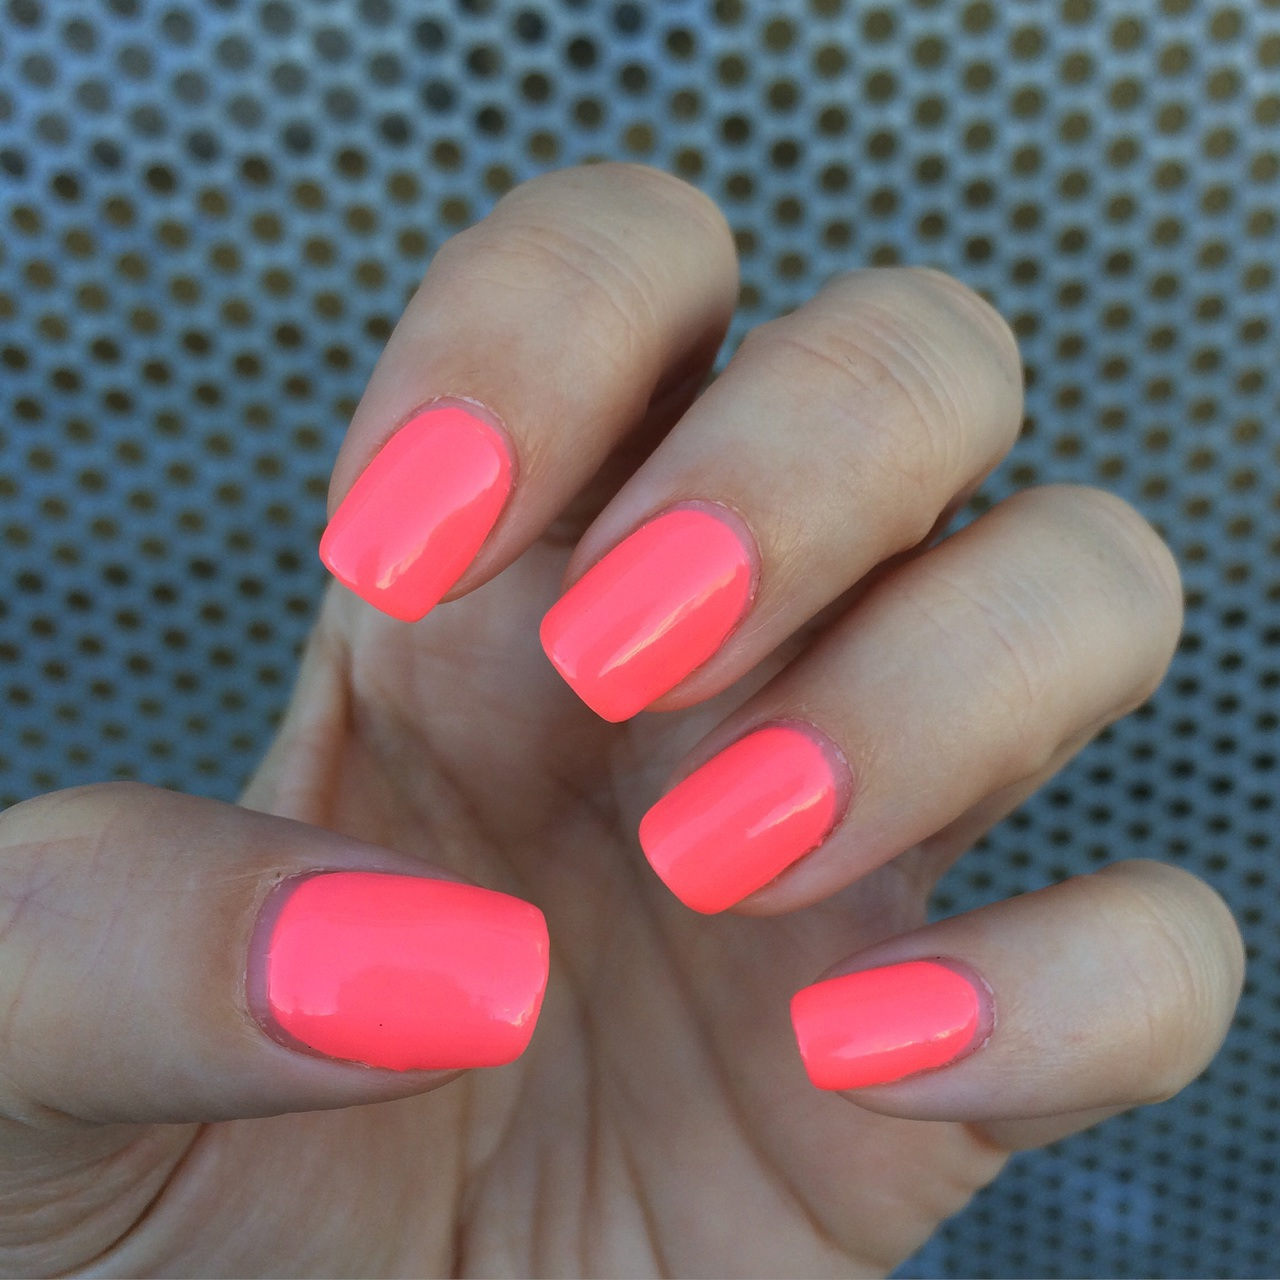 Neon coral is always a good choice 💅🏻 Polish by @gelish_official ...